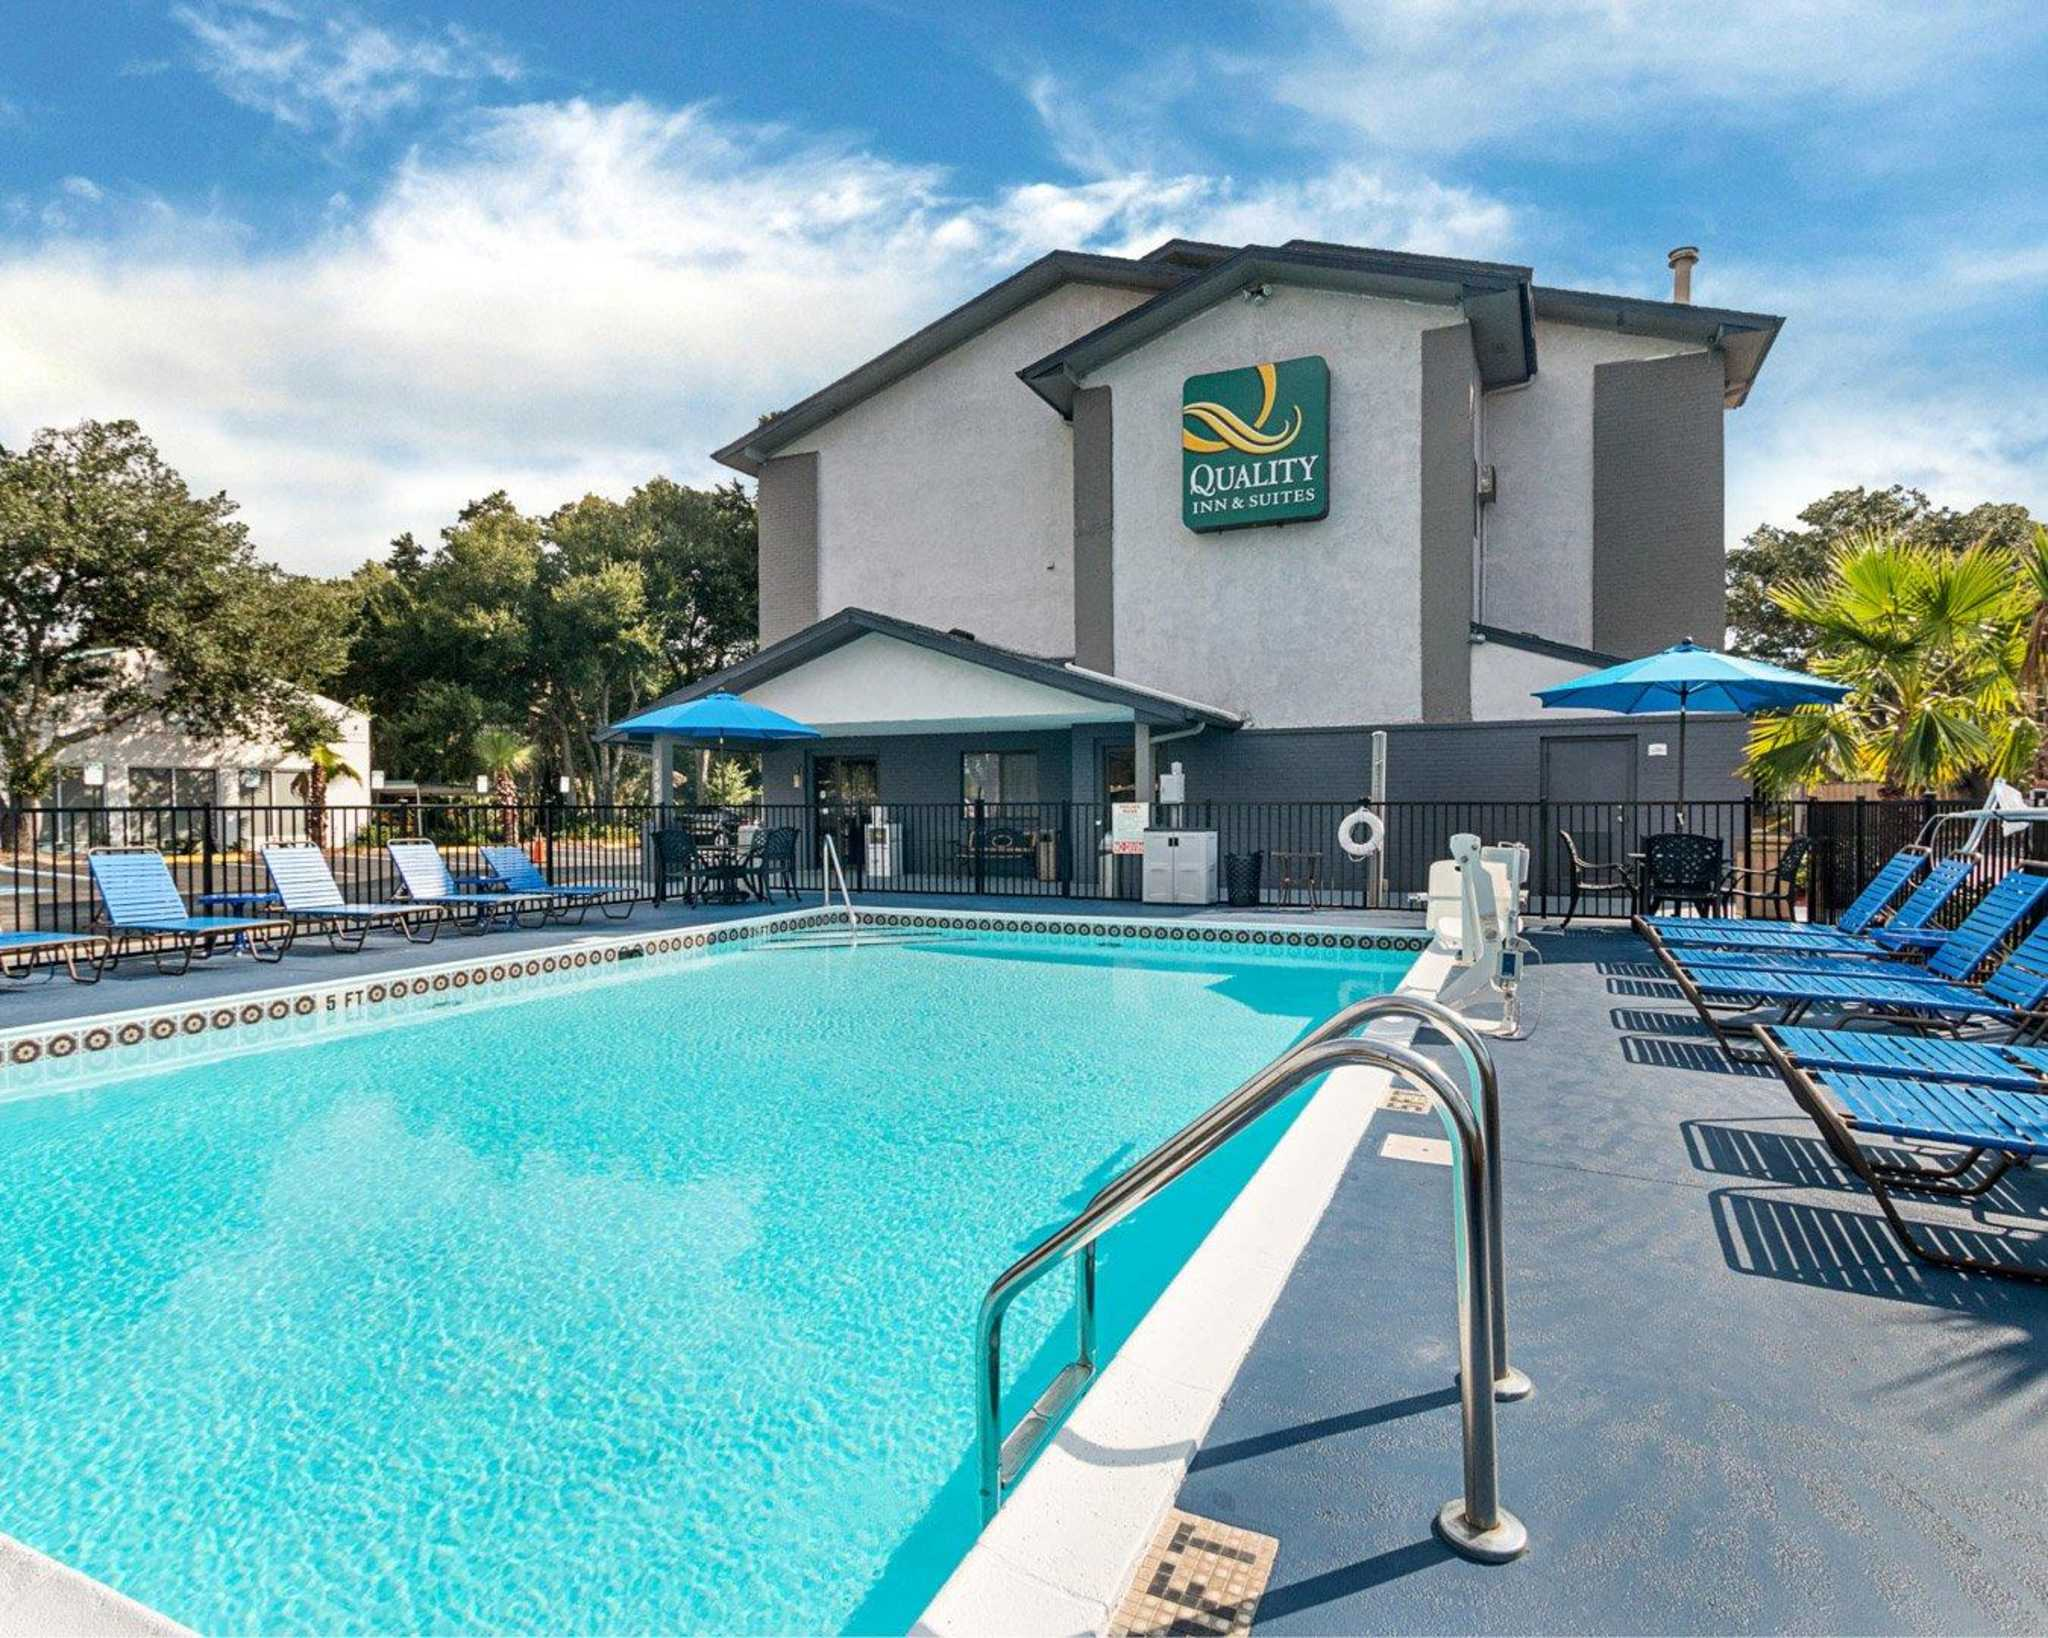 Quality Inn Coupons Near Me In Leesburg 8coupons